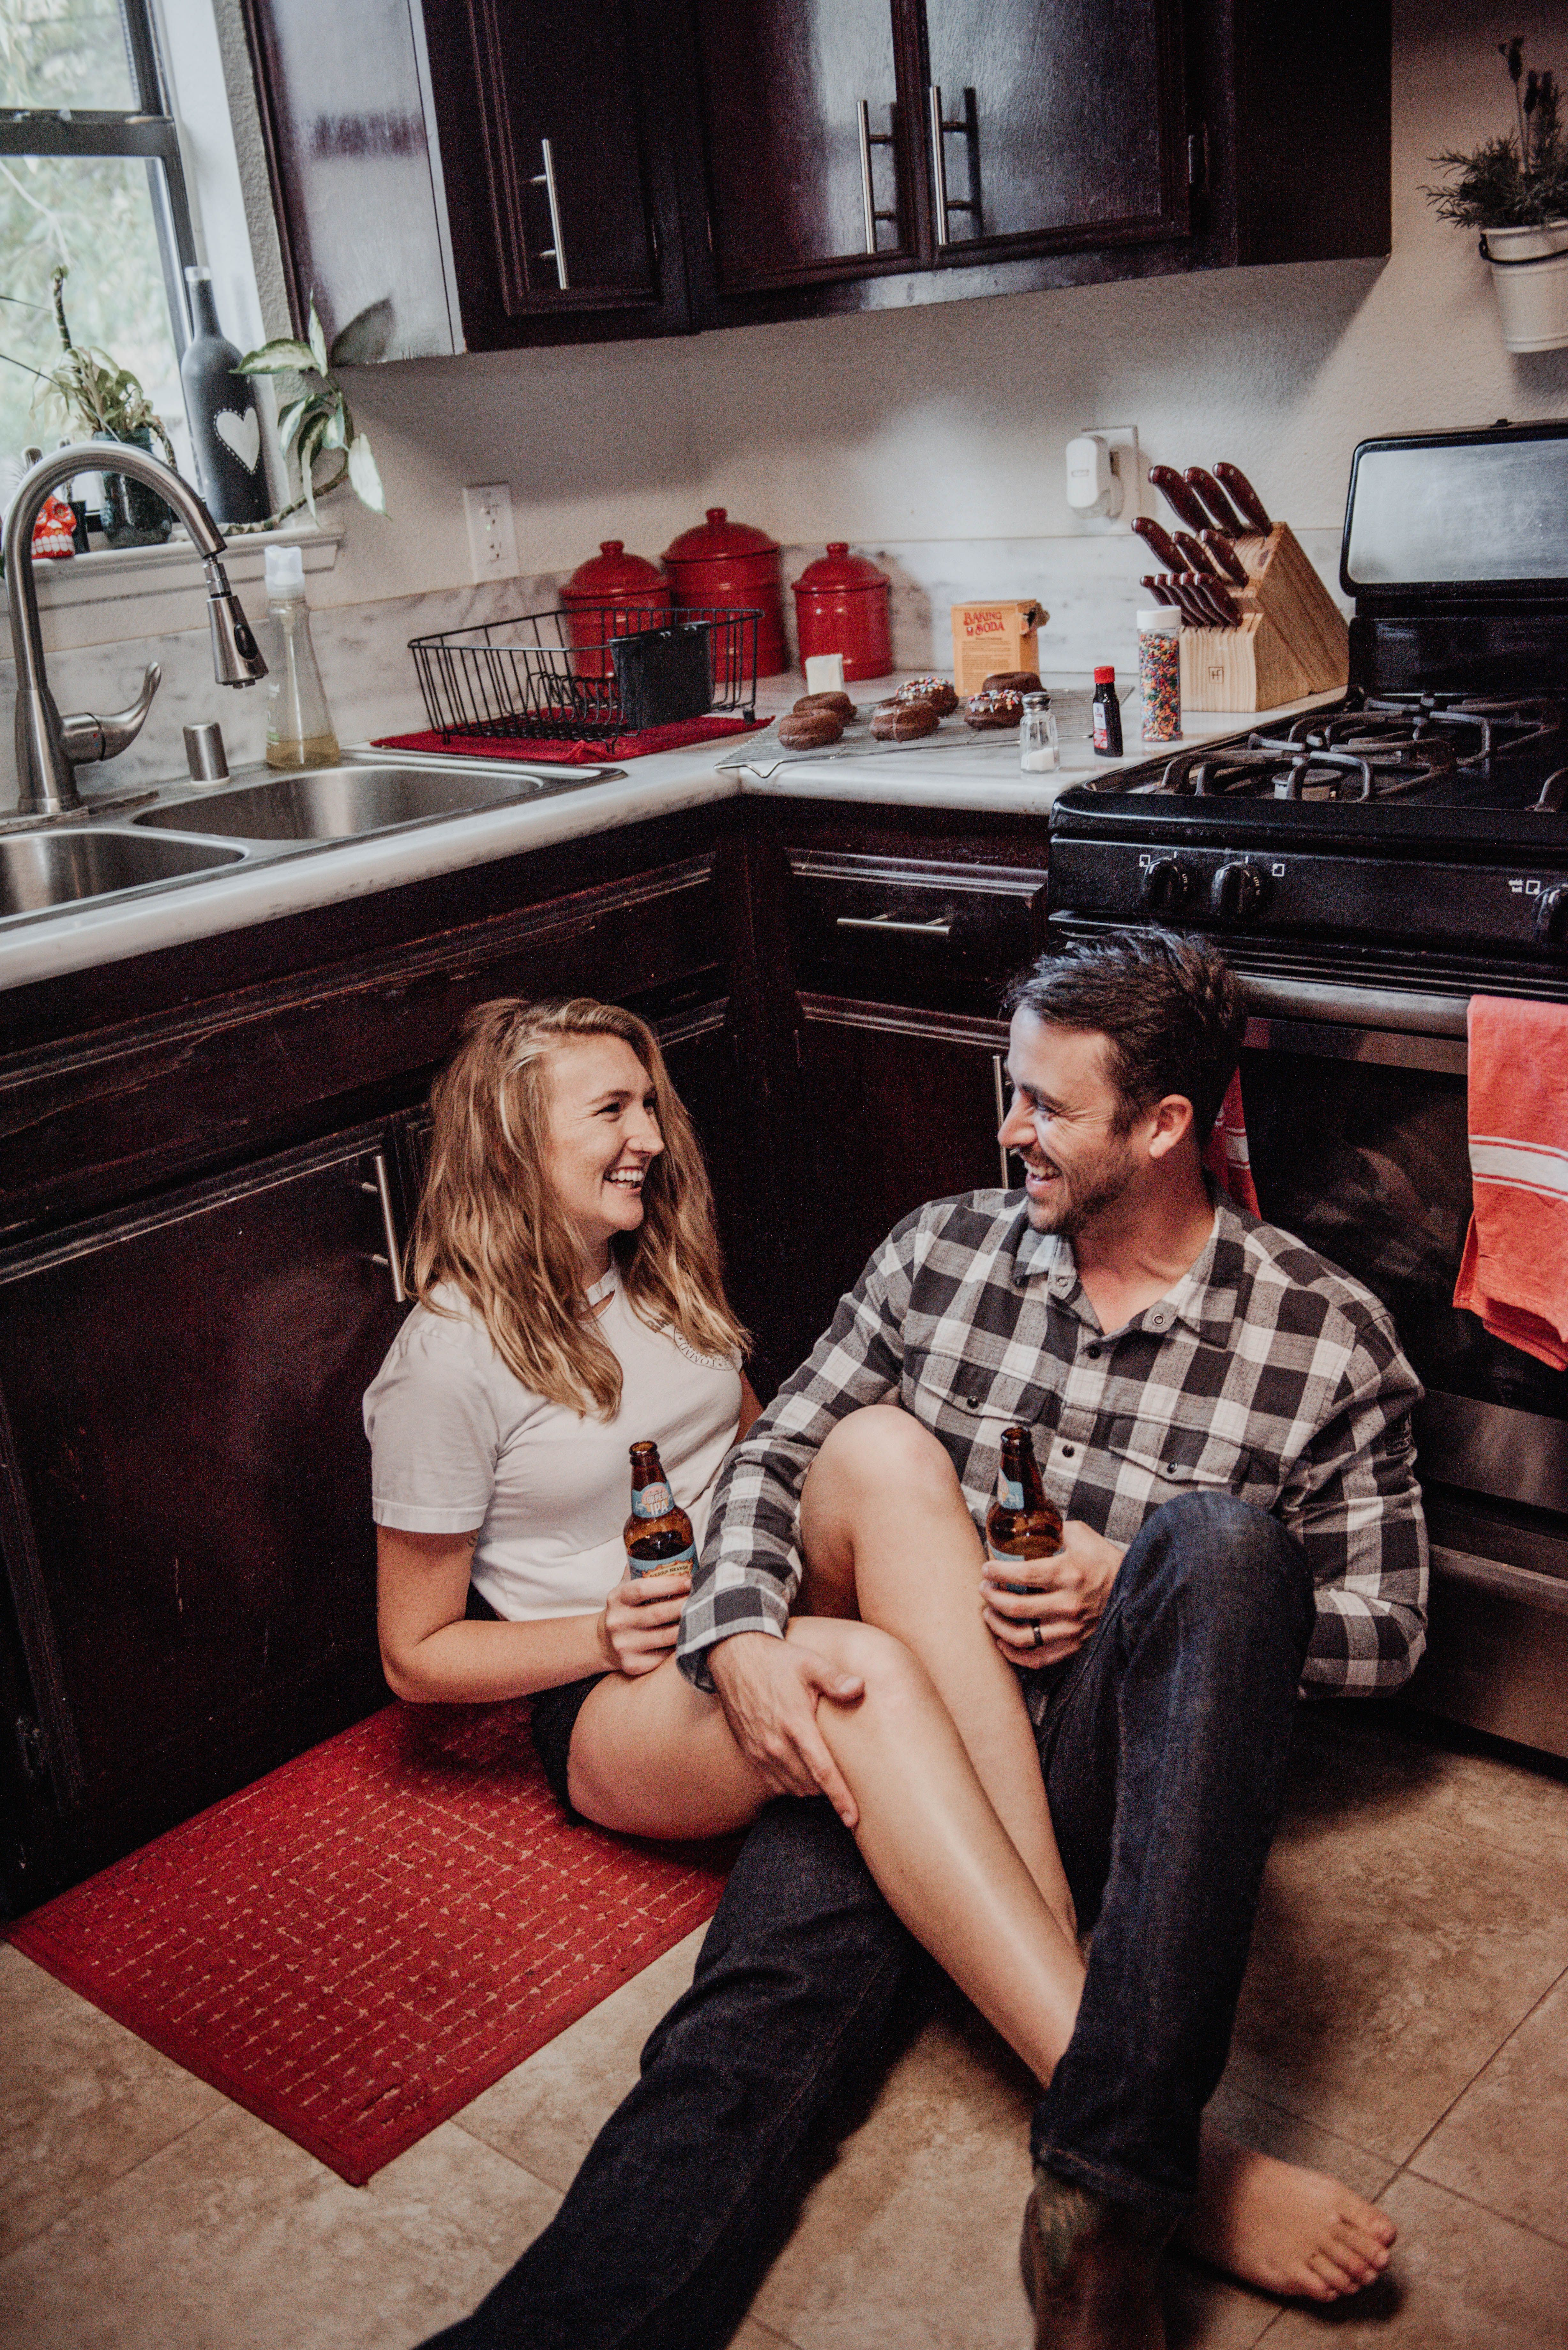 In home Couples Photos / Donuts and beer photoshoot